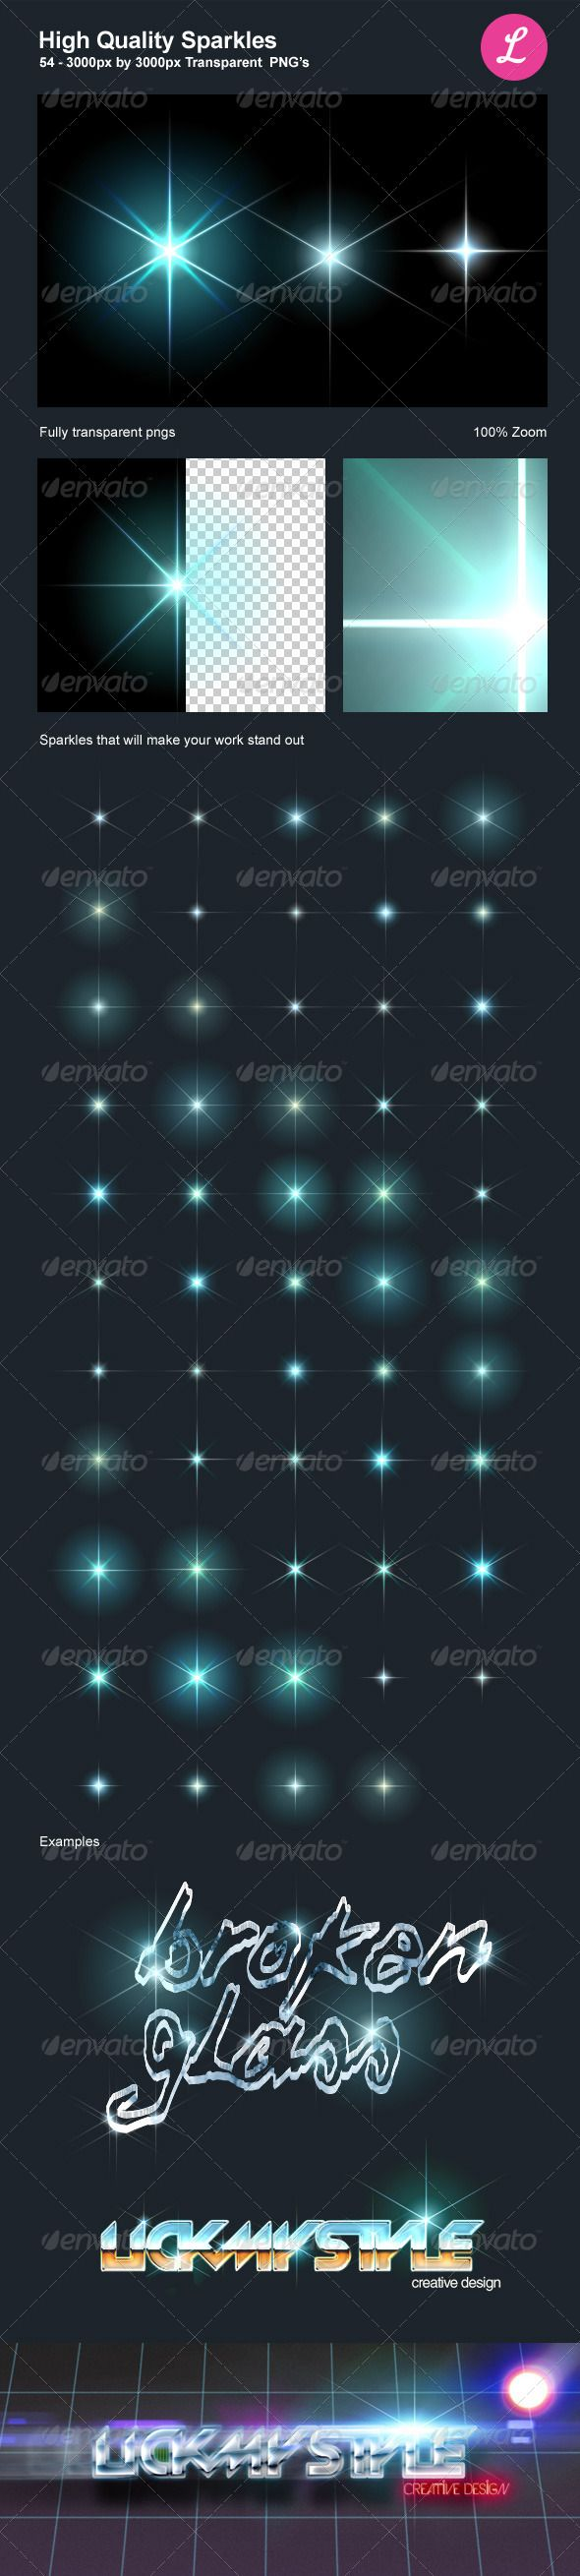 High Quality Sparkles - #Decorative Graphics Download here:  https://graphicriver.net/item/high-quality-sparkles/4566079?ref=alena994